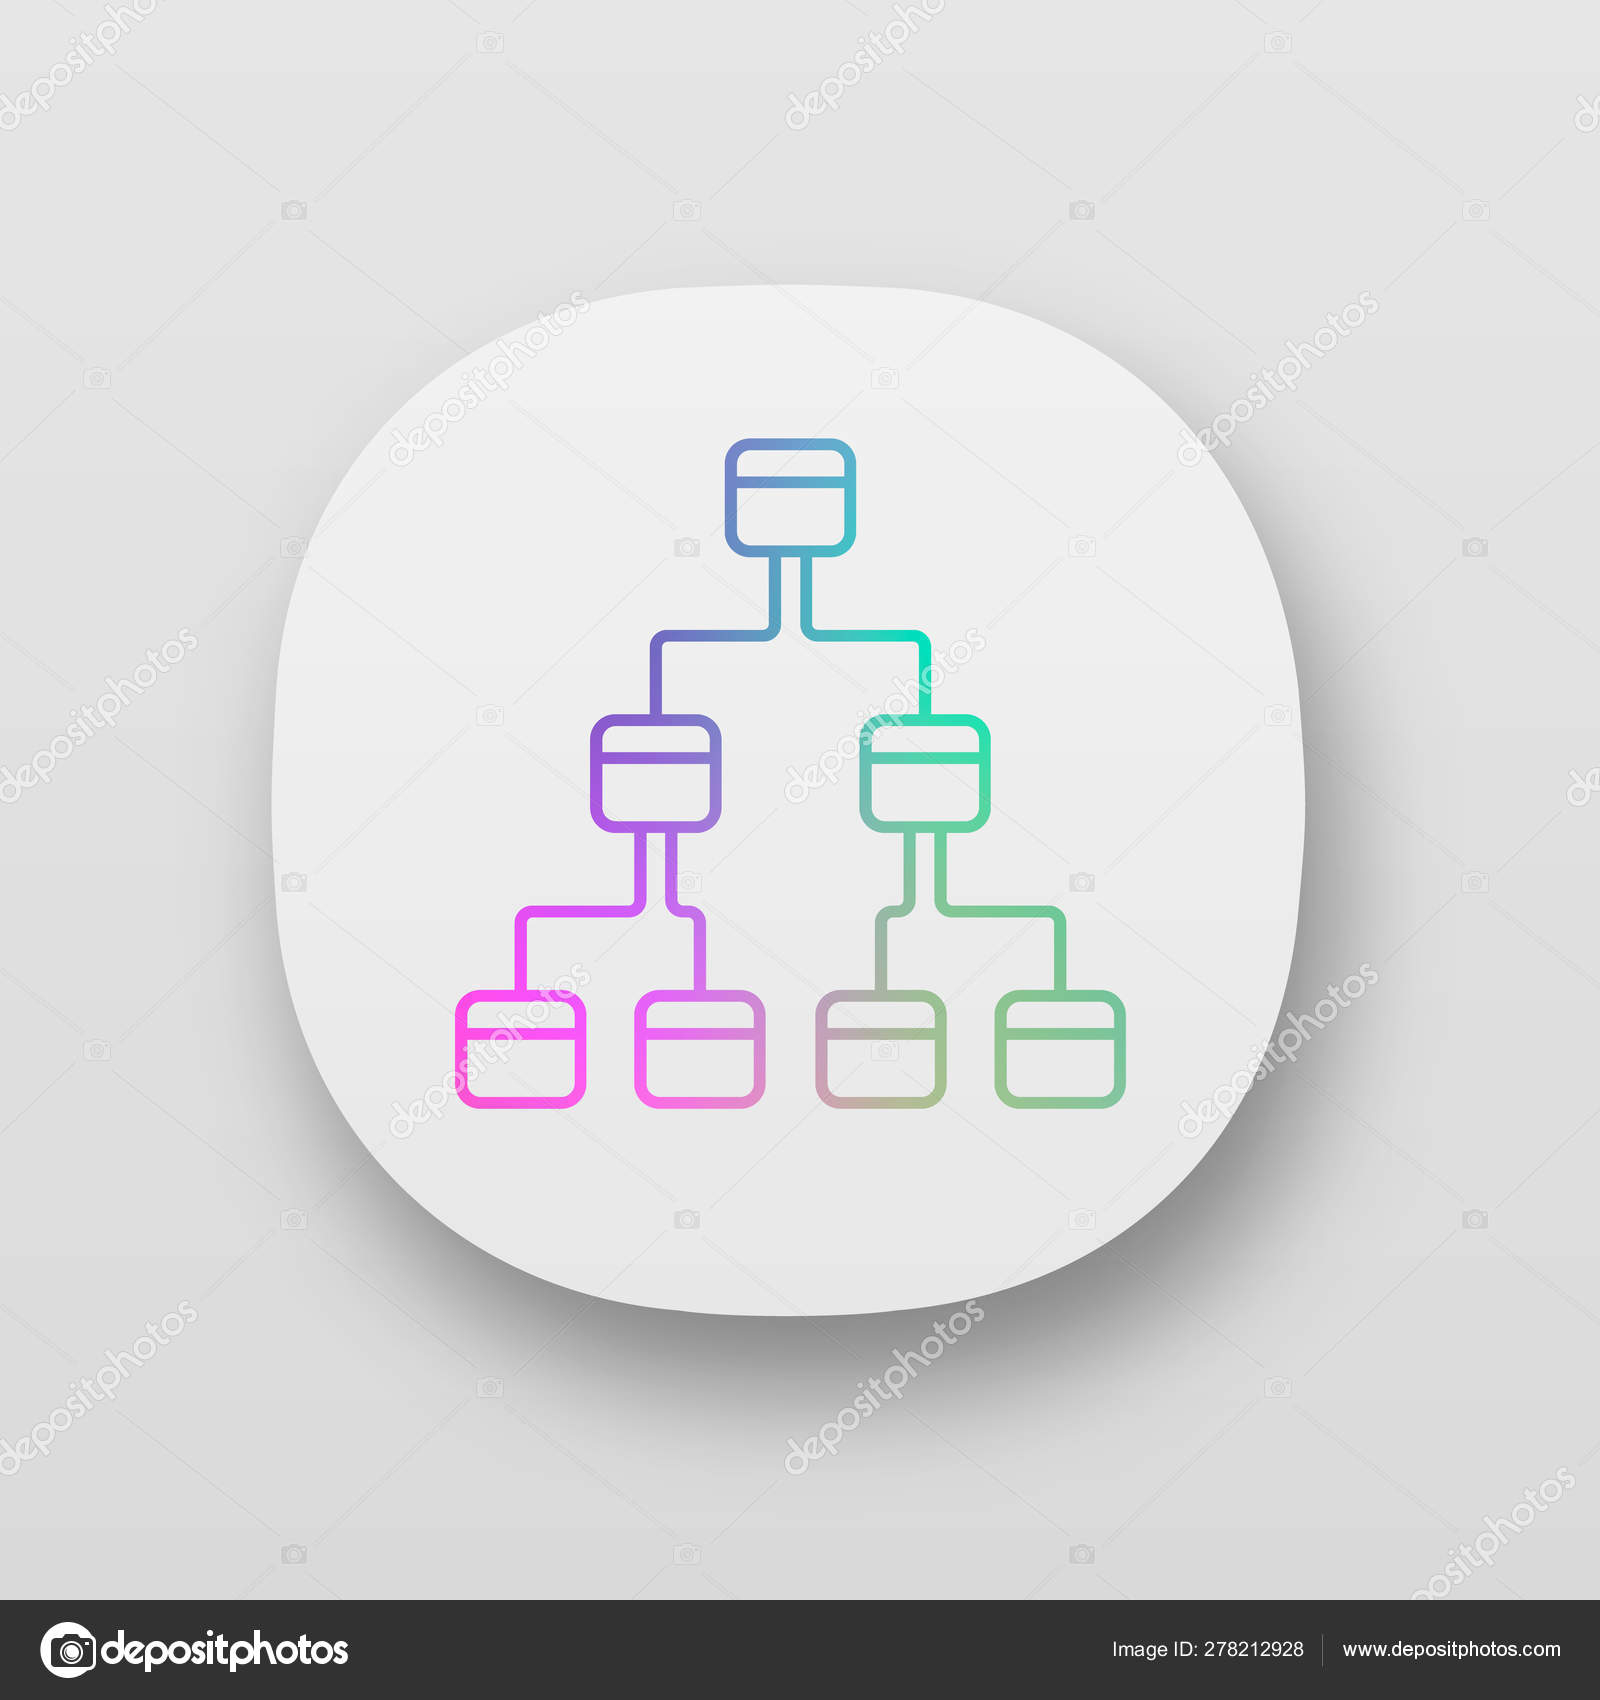 Tree Diagram Maker Tree Diagram App Icon 3 Space Ring Hierarchical System Node Link